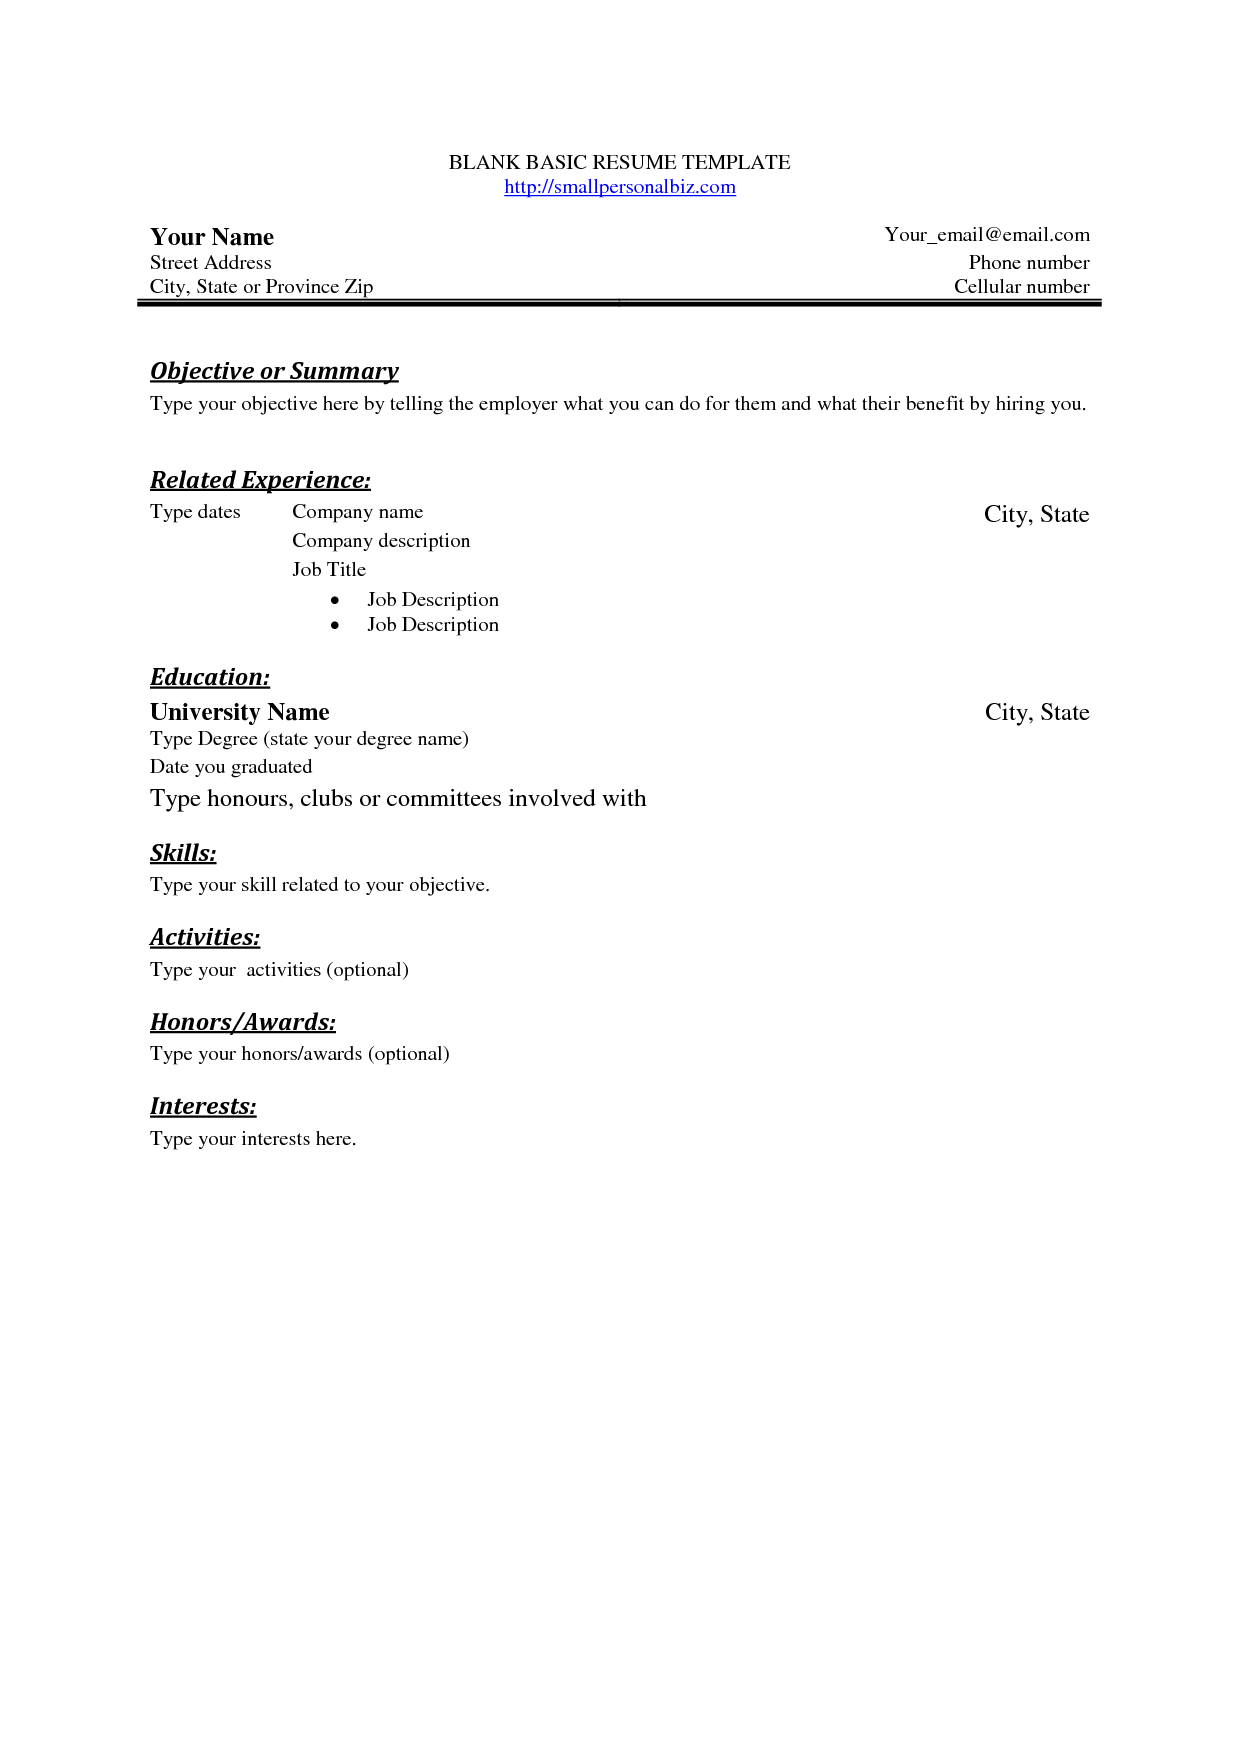 Blank Resume Template Sample Datariouruguay